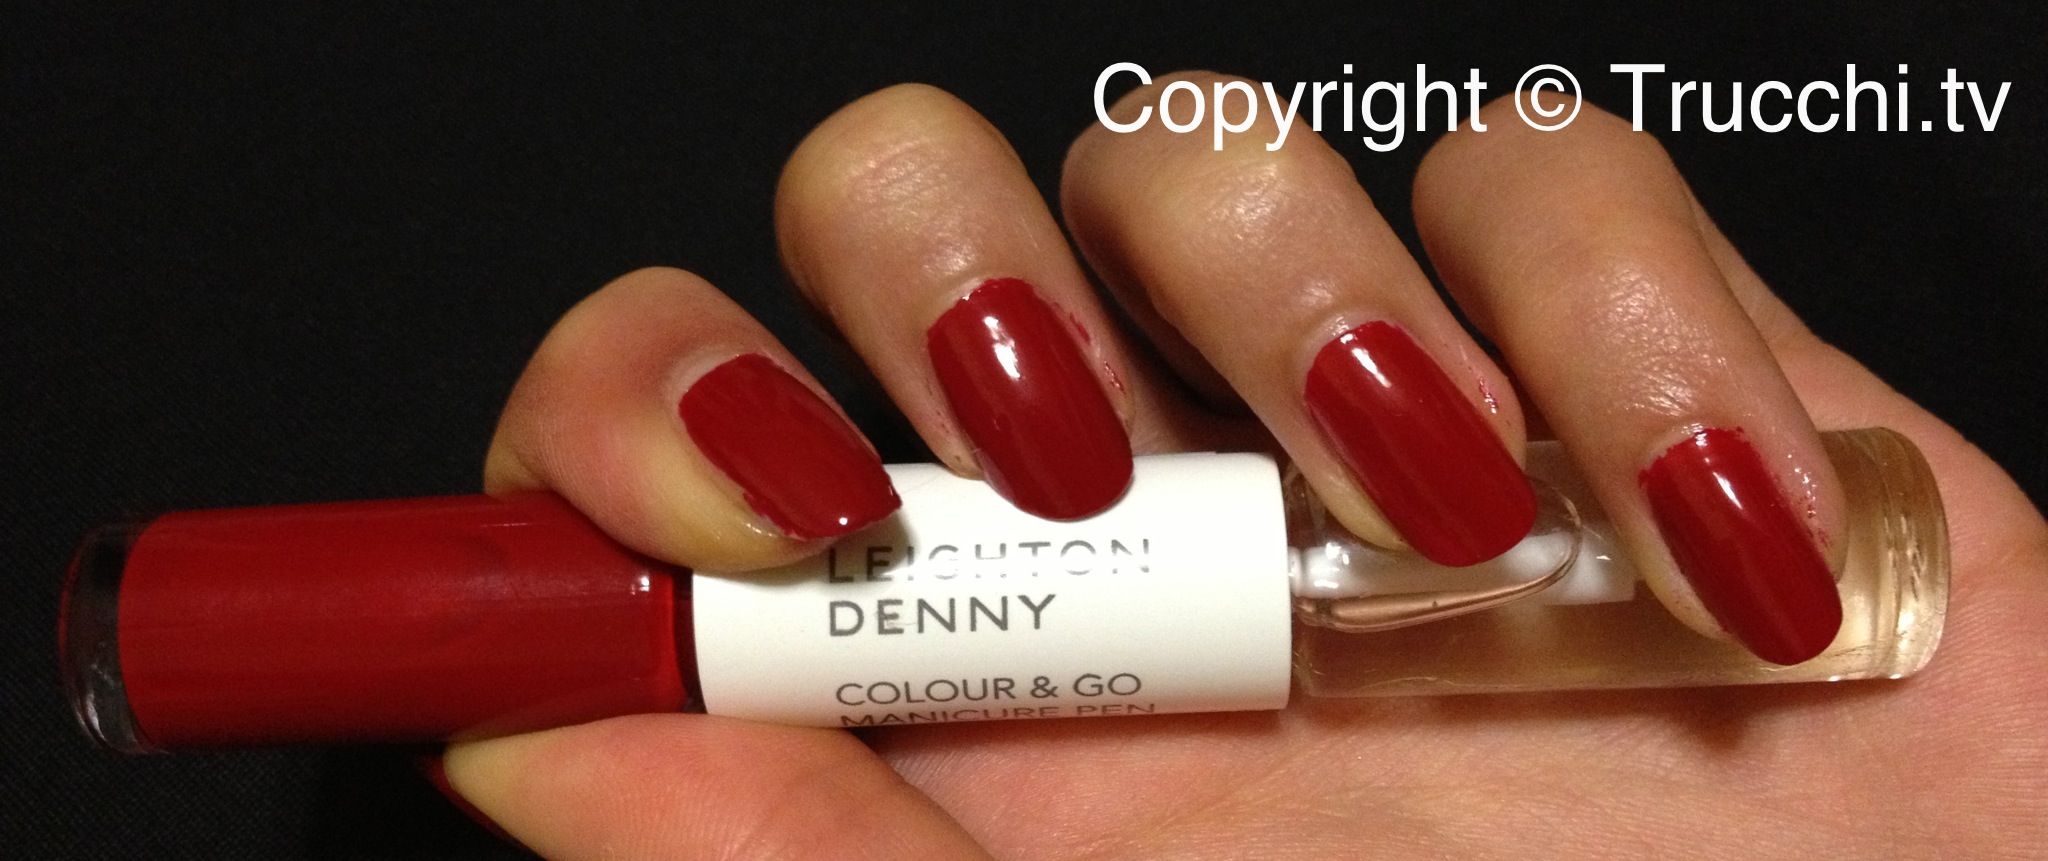 smalto Leighton Denny colour and go manicure pen Provocative 1